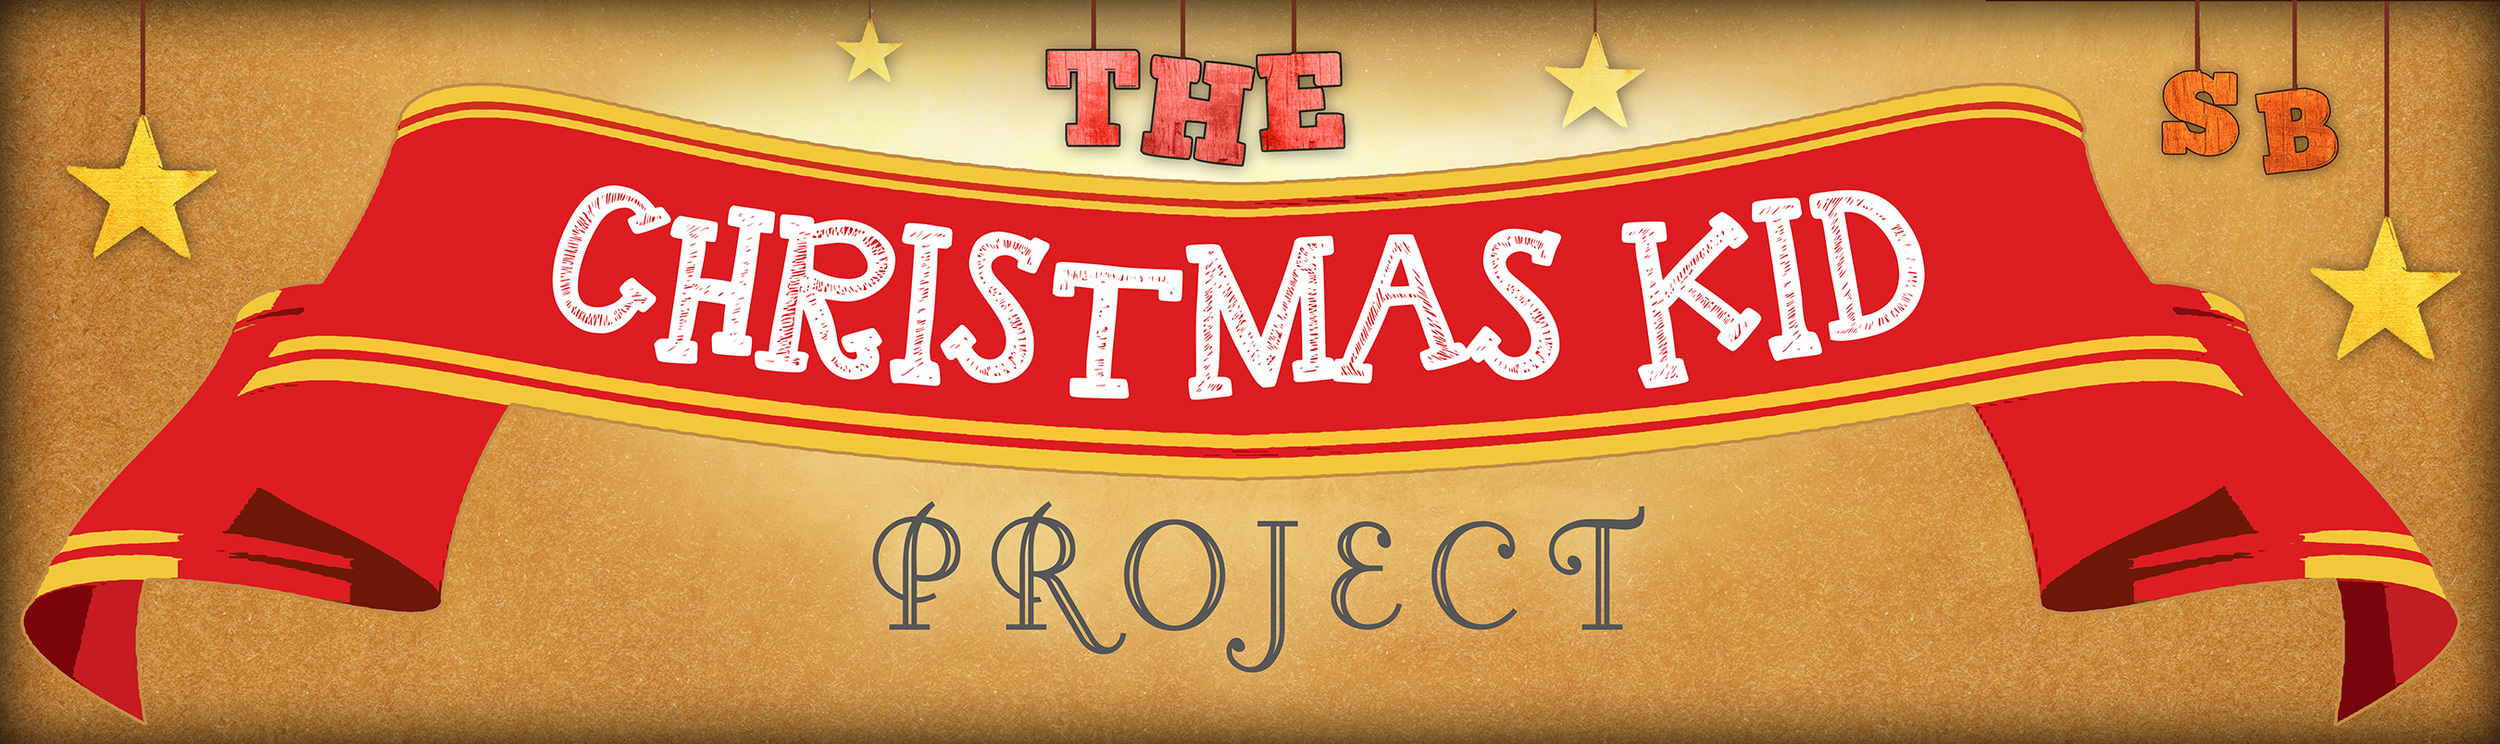 The Christmas Kid Project | StoneBridge Church